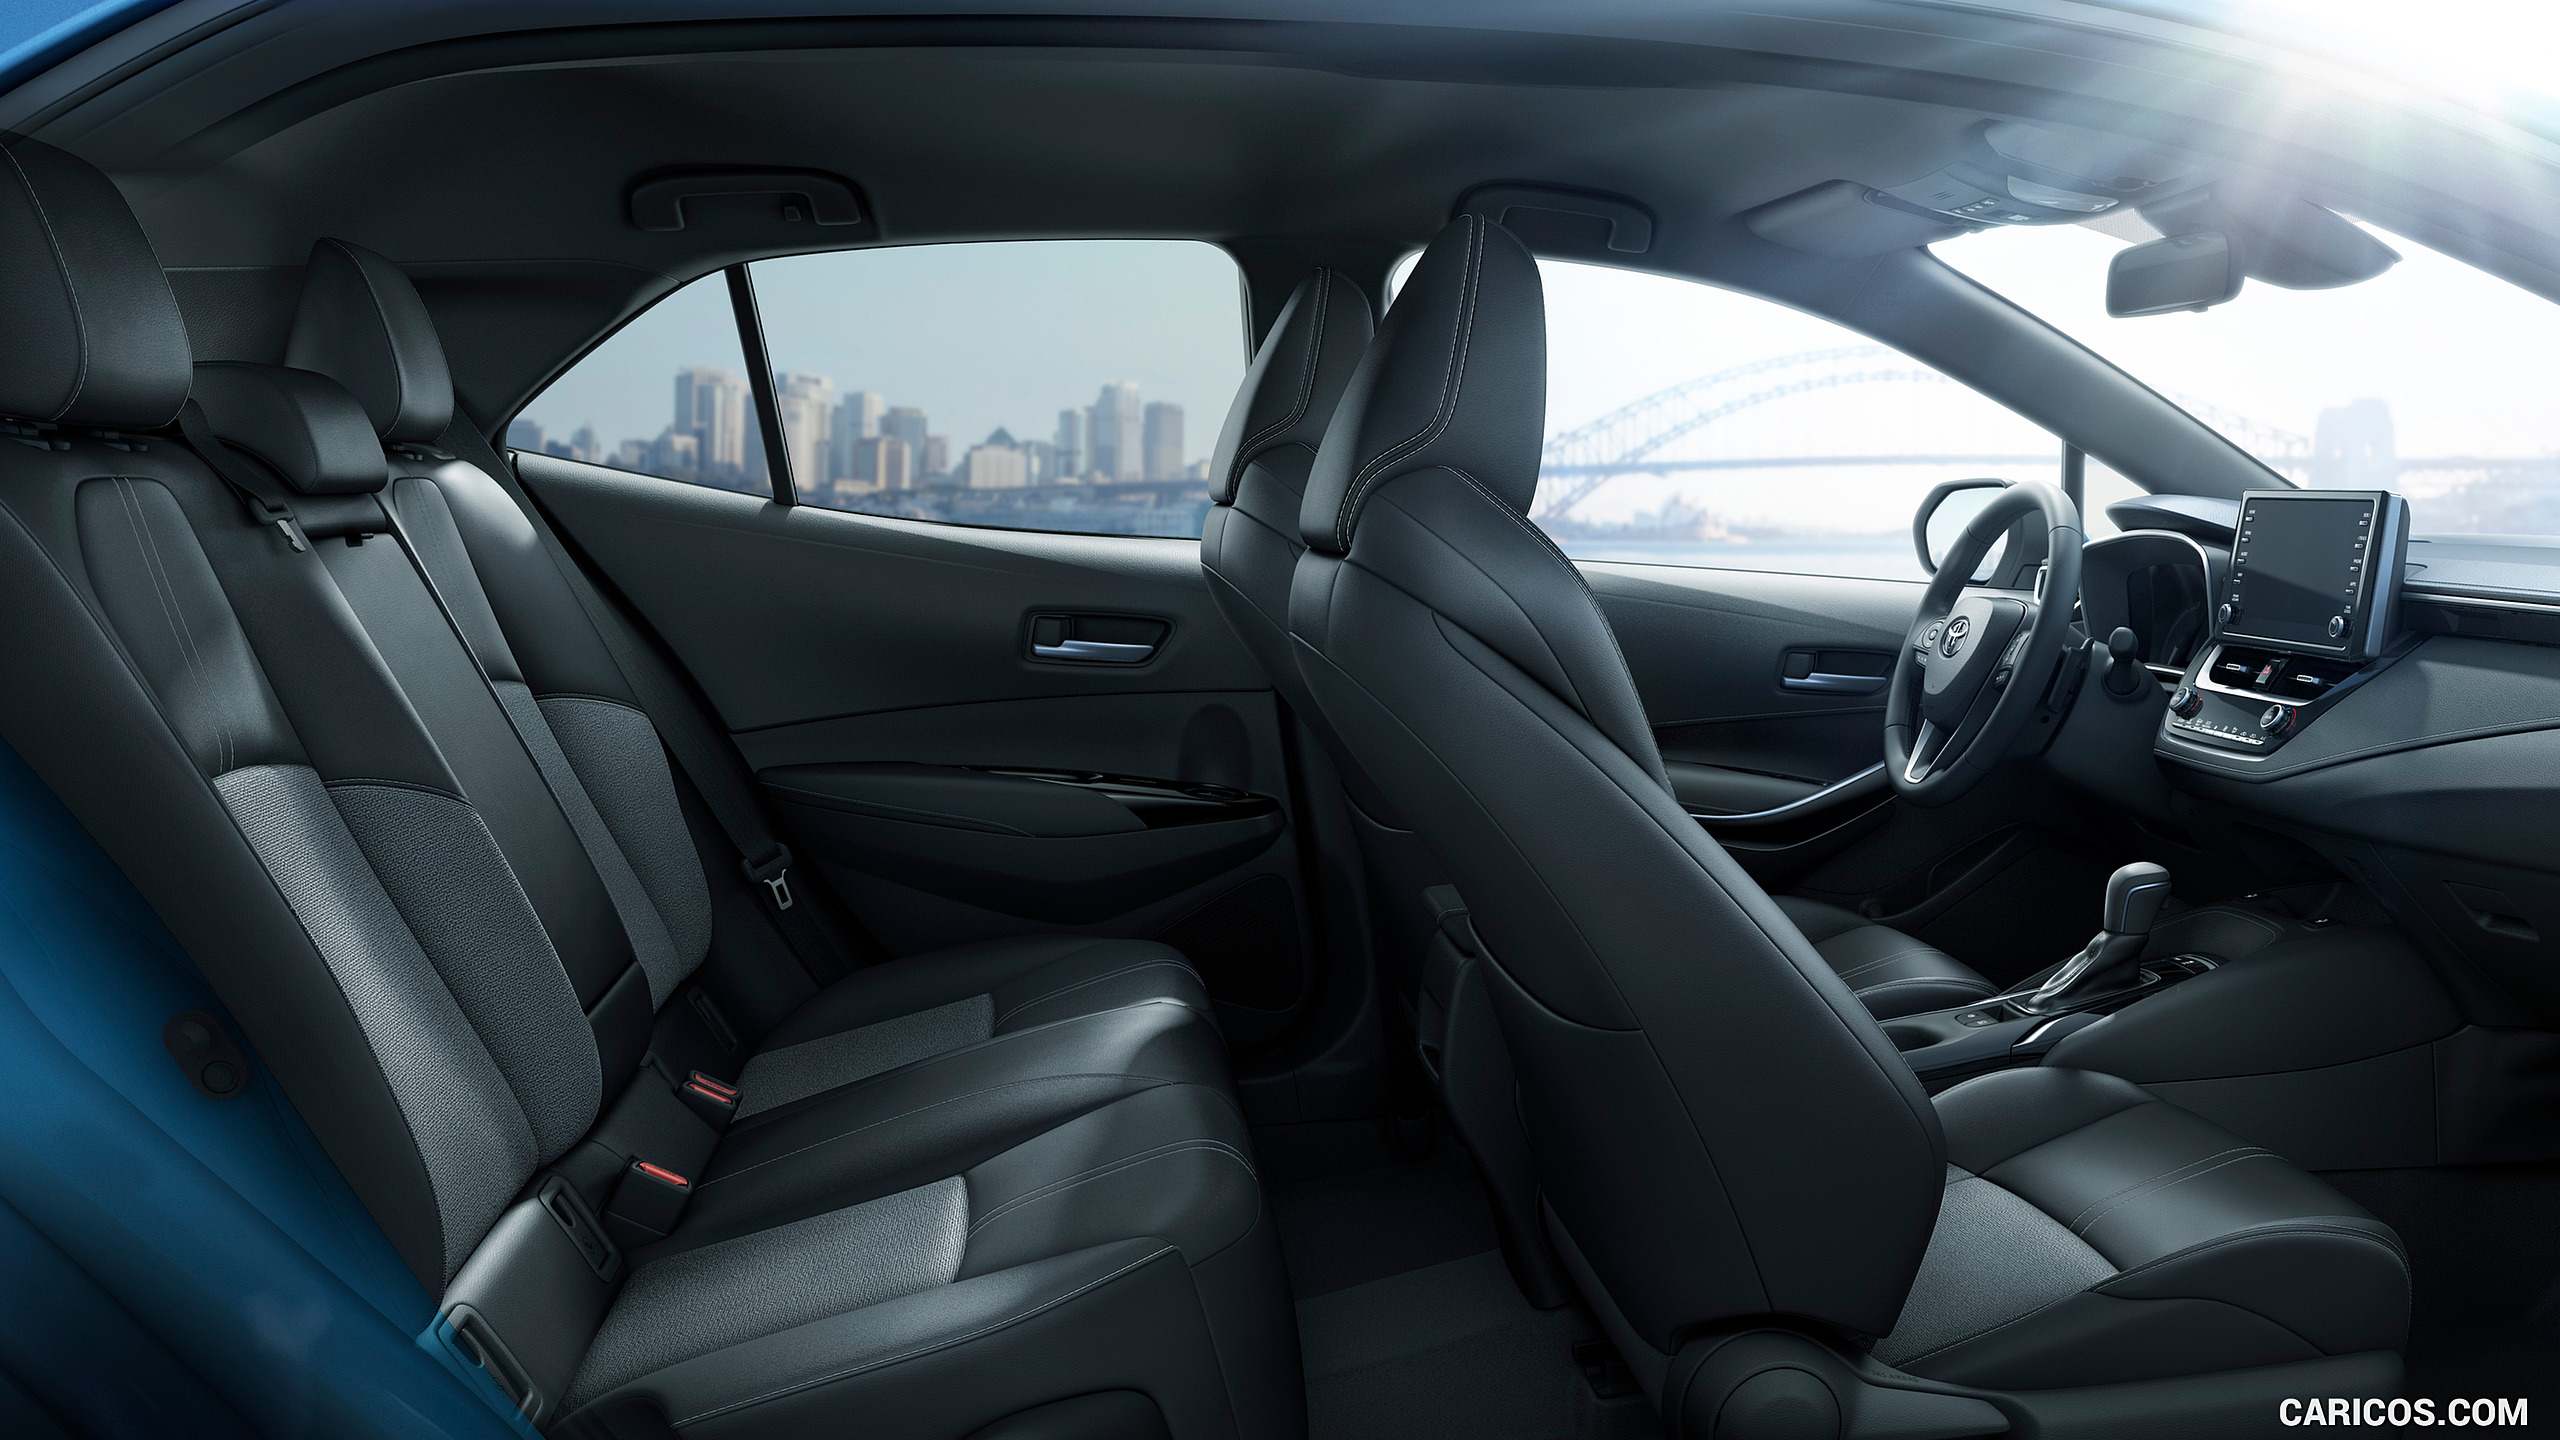 2019 Toyota Corolla Hatchback Interior With 2019 Toyota - 2019 Toyota Corolla Hatchback Se Interior , HD Wallpaper & Backgrounds